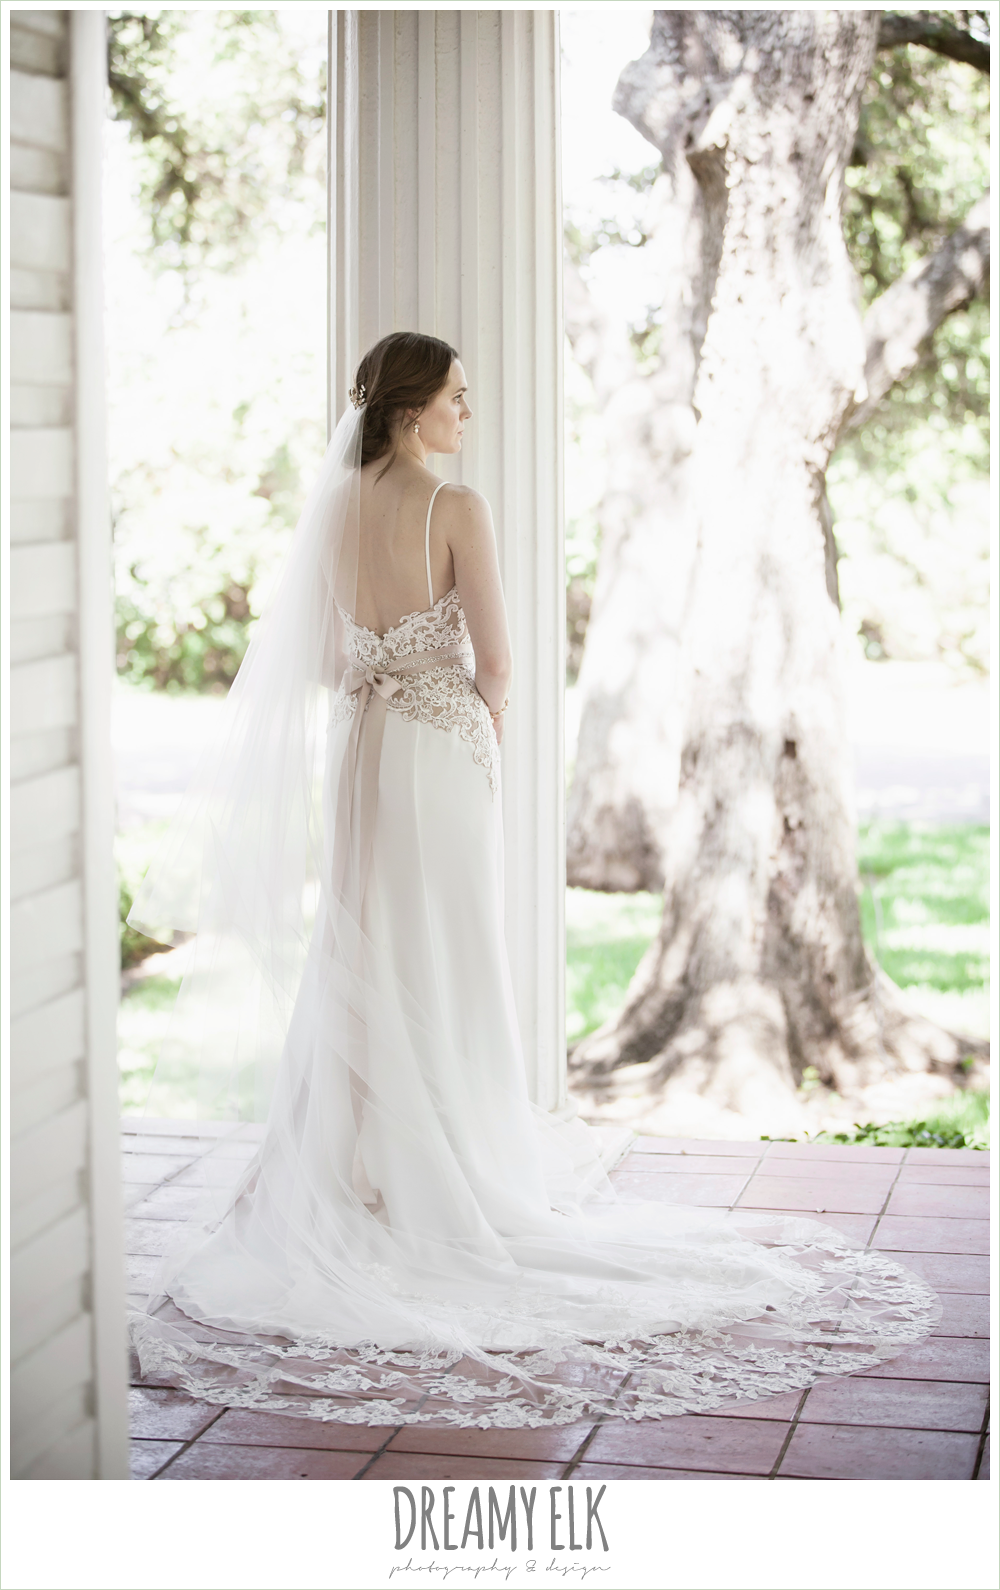 sheath two tone wedding dress, cathedral lace wedding veil, indoor summer bridal photo, winfield inn {dreamy elk photography and design}